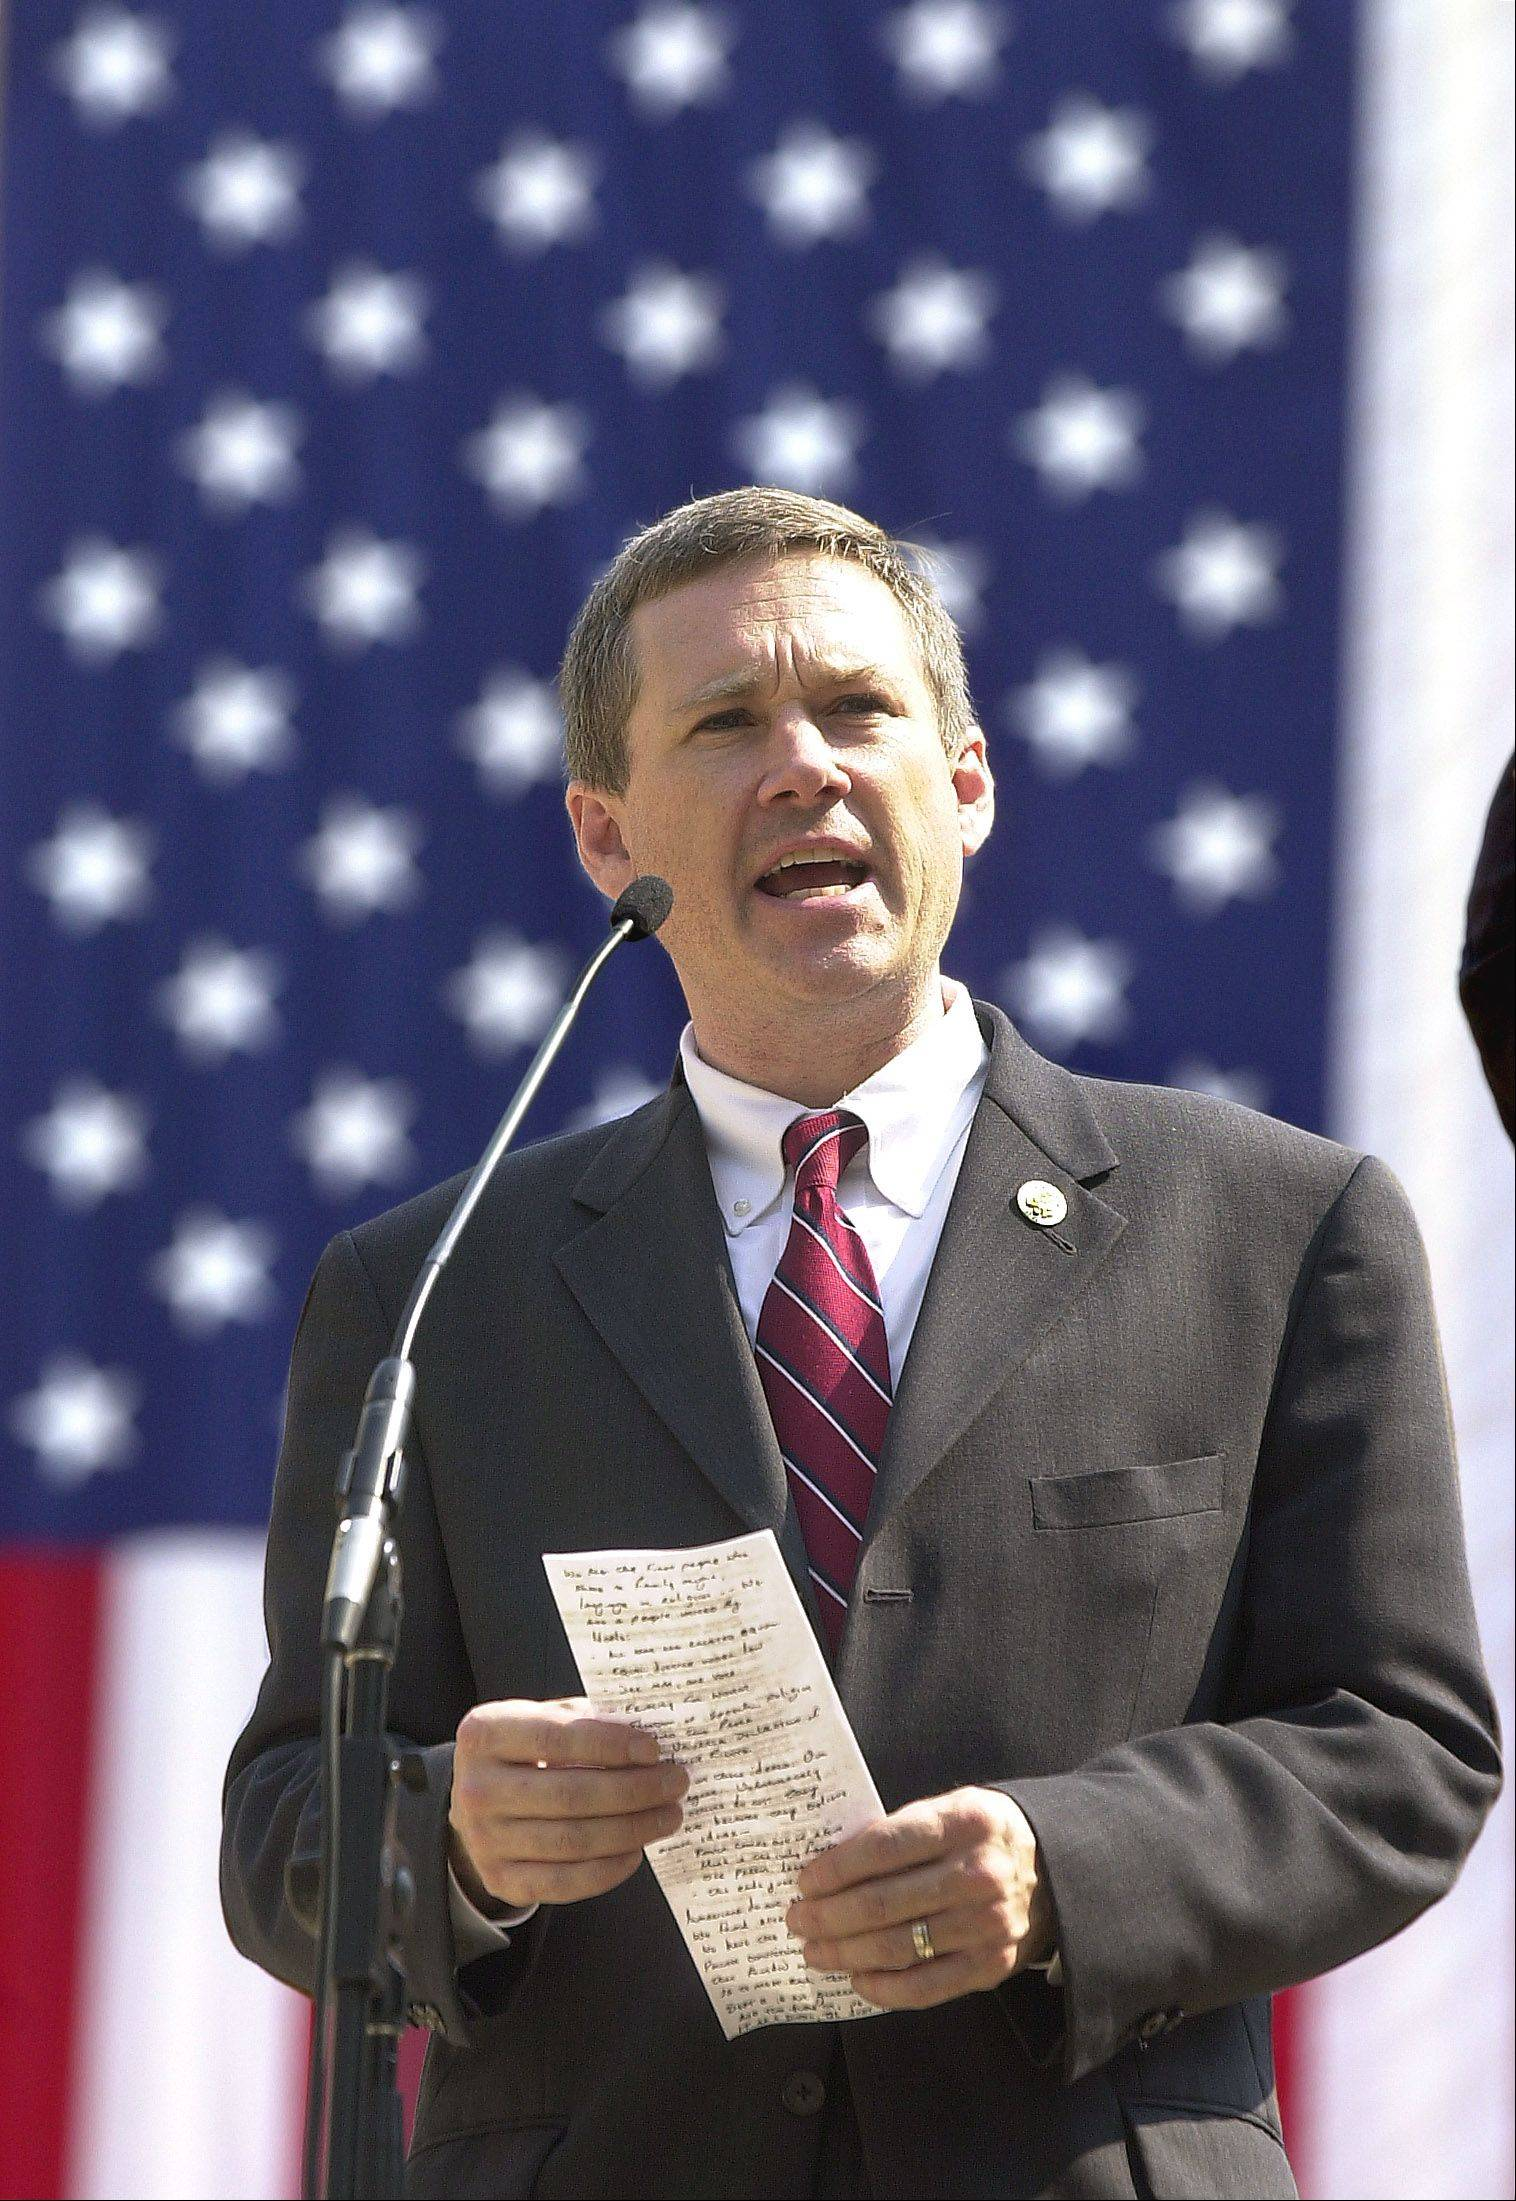 Senator Mark Kirk's brain swelling stabilized